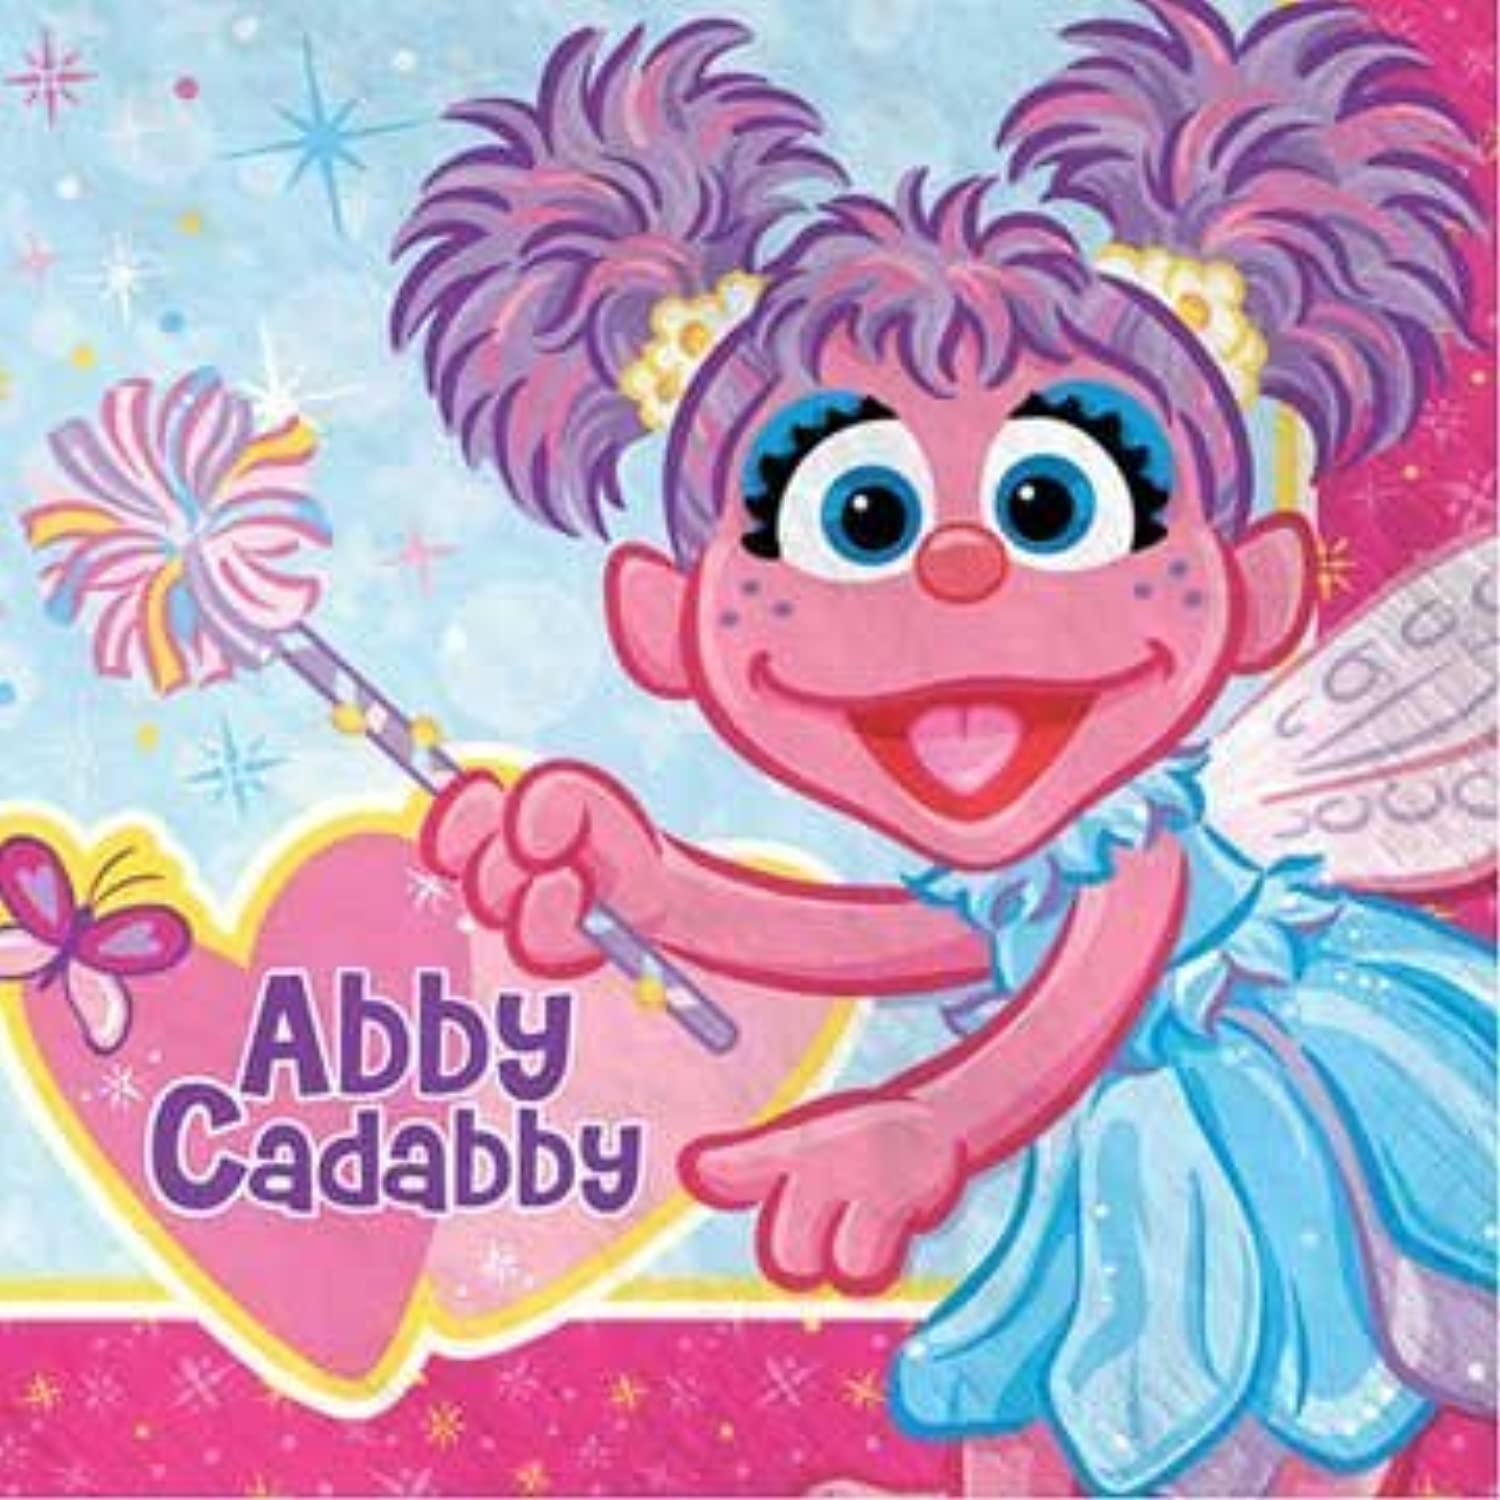 Abby Cadabby Lunch Napkins, 16ct by American Greetings